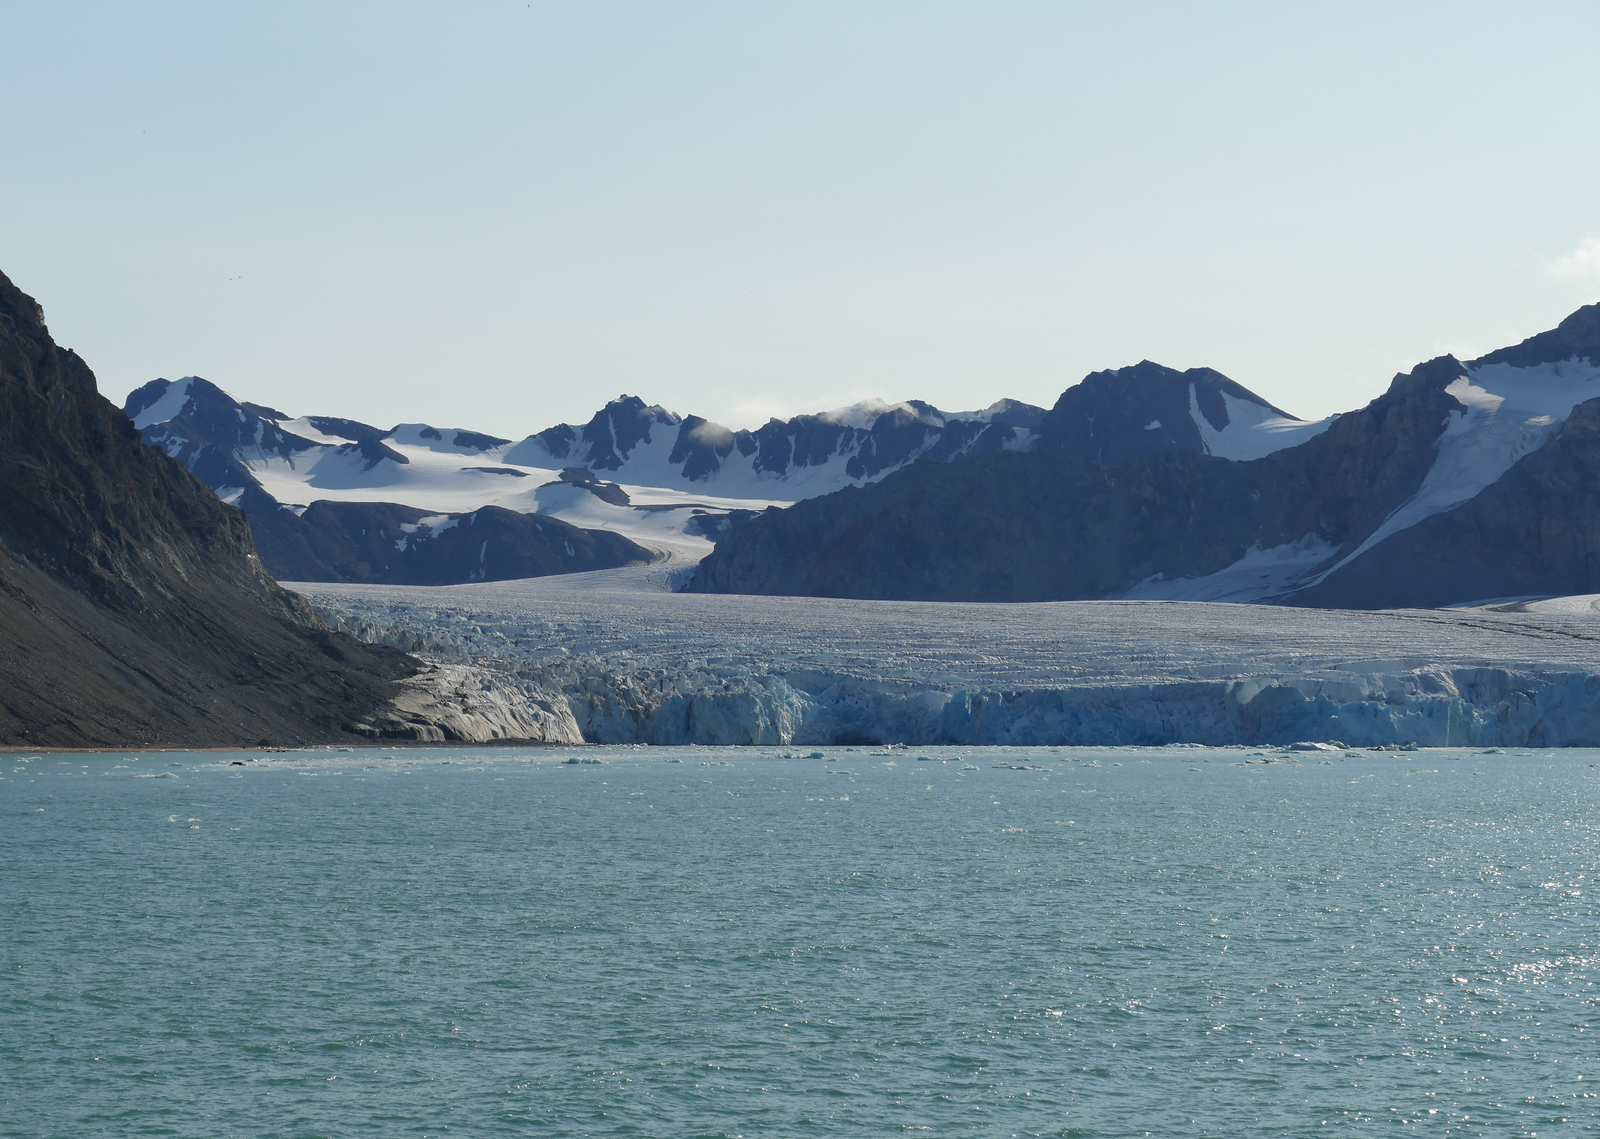 14th July Glacier travels into the sea, surrounded by a mountainous landscape.